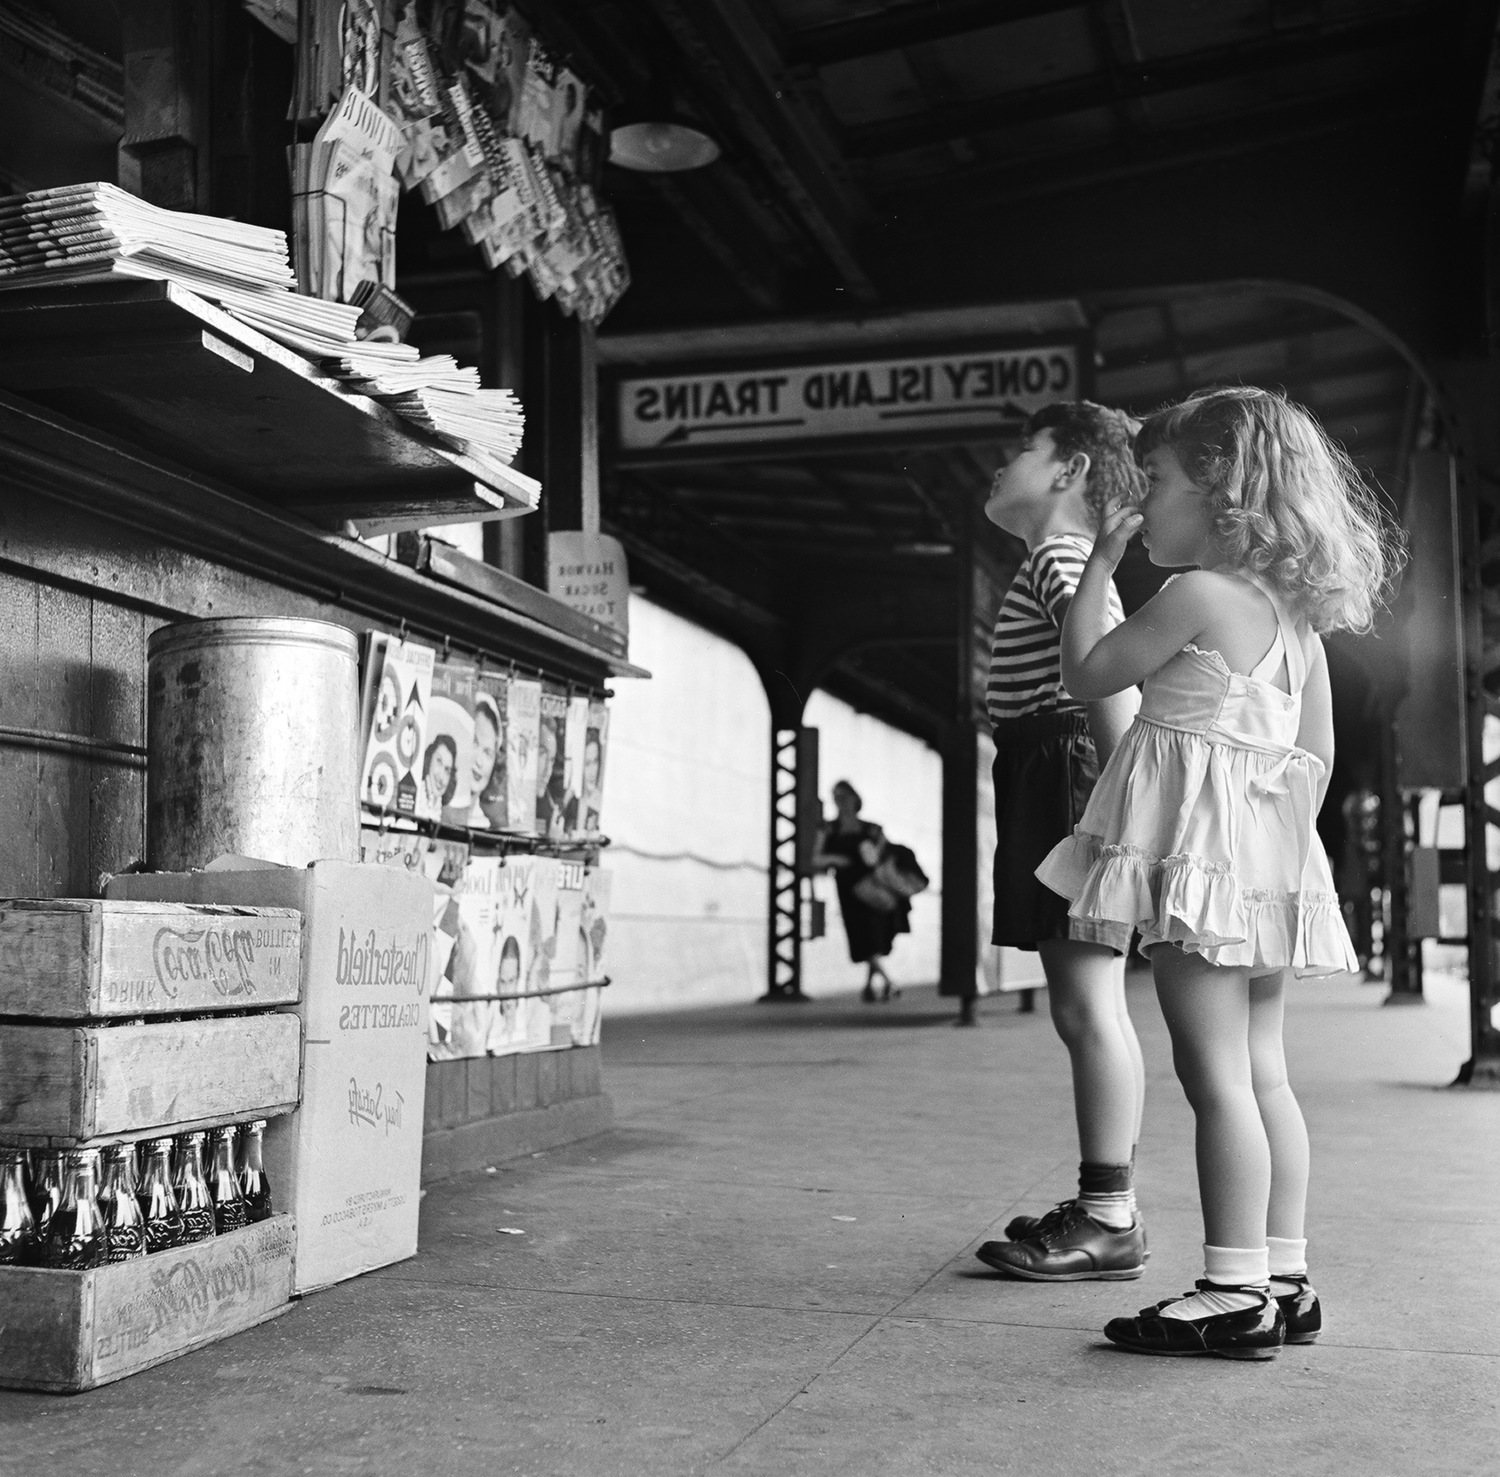 A brother and his sister look up at a newsstand, located on the platform of the New York city subway, as they wait for the train to Coney Island, New York, 1948.